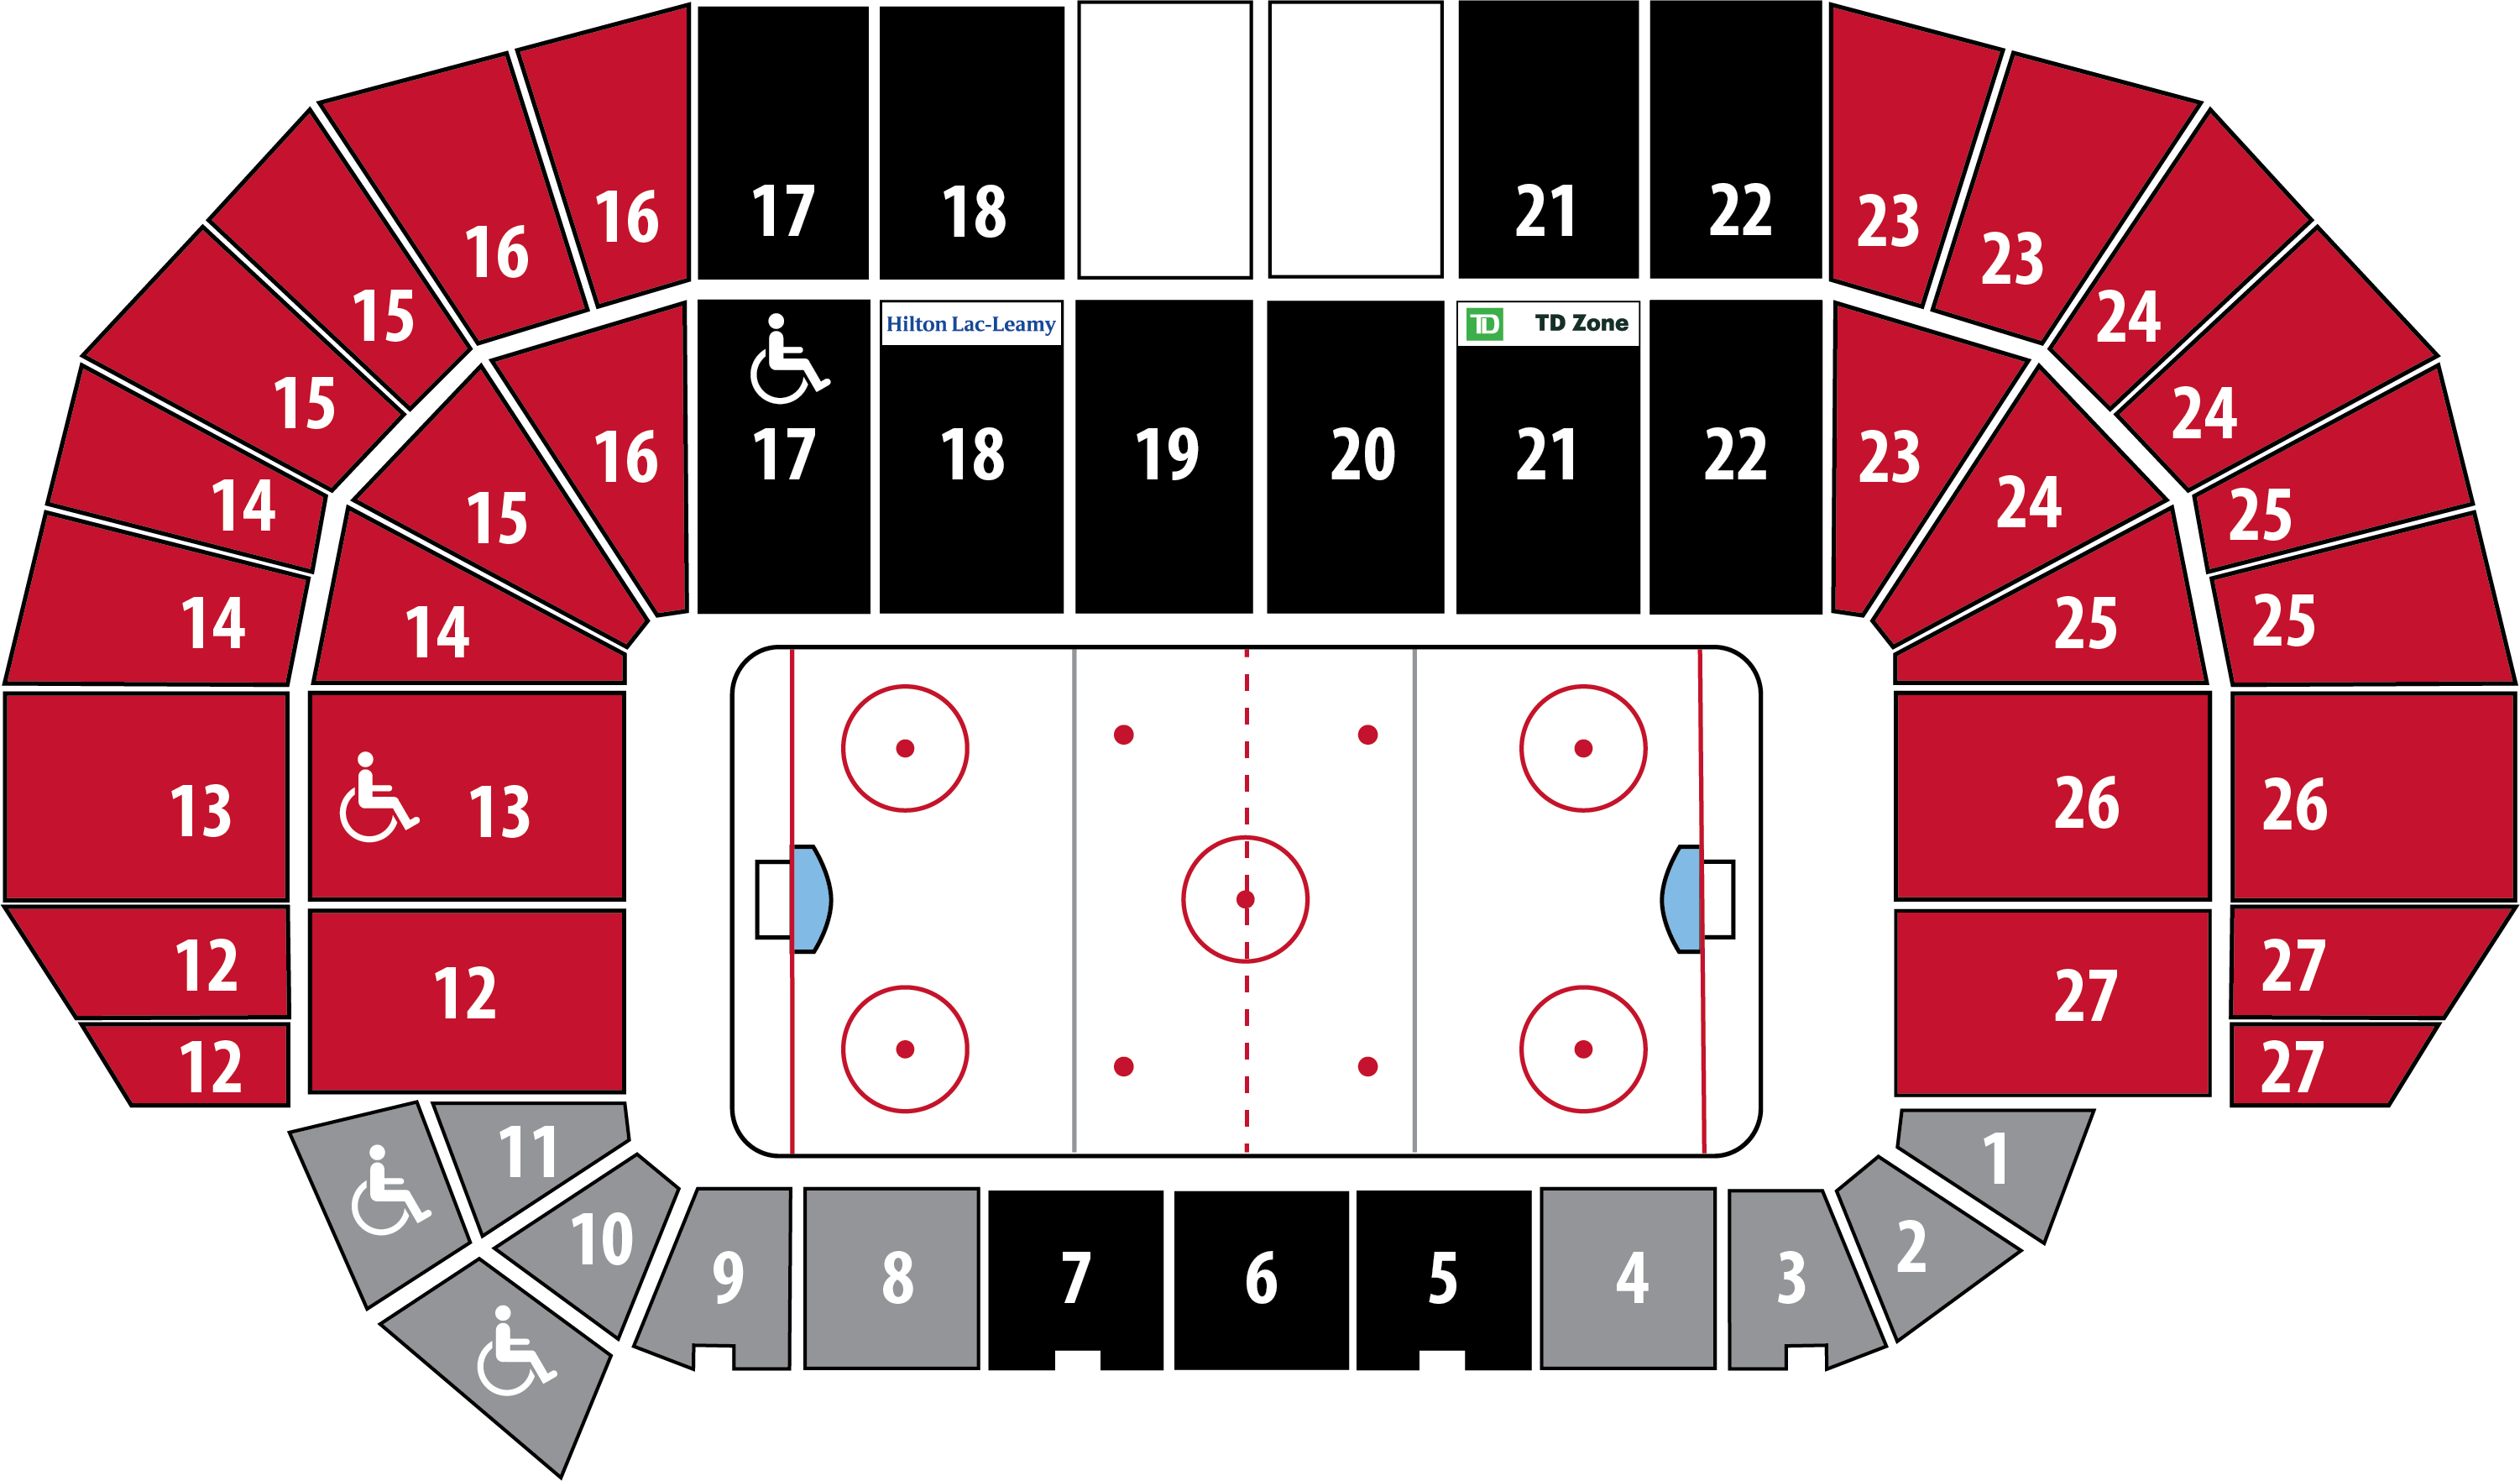 Round 4 ticket seating chart